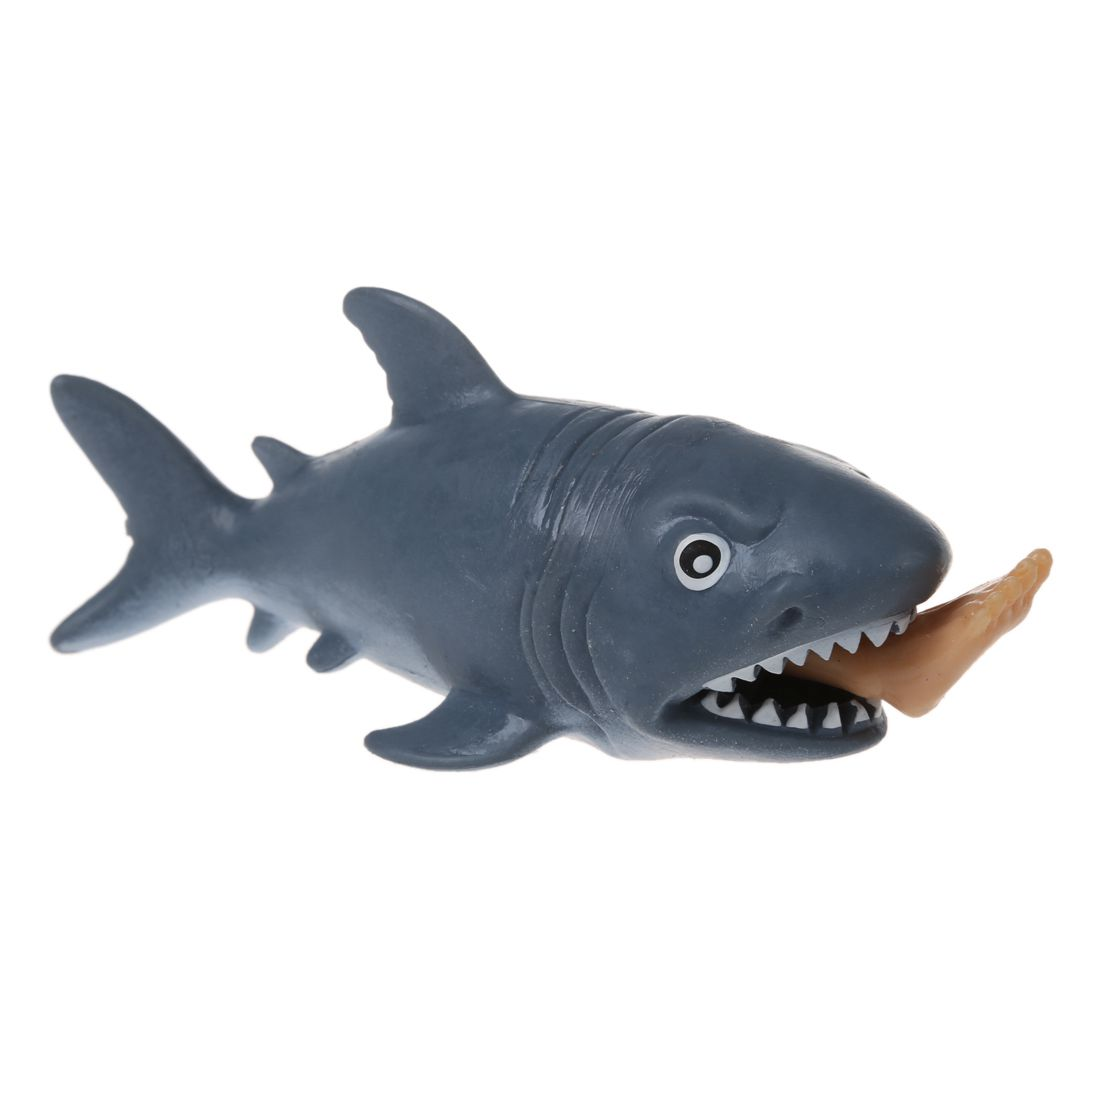 Funny Man-eating Shark and Scary Toys Prank Wacky Toy Squeezing and Stress Toy April Fools Toys